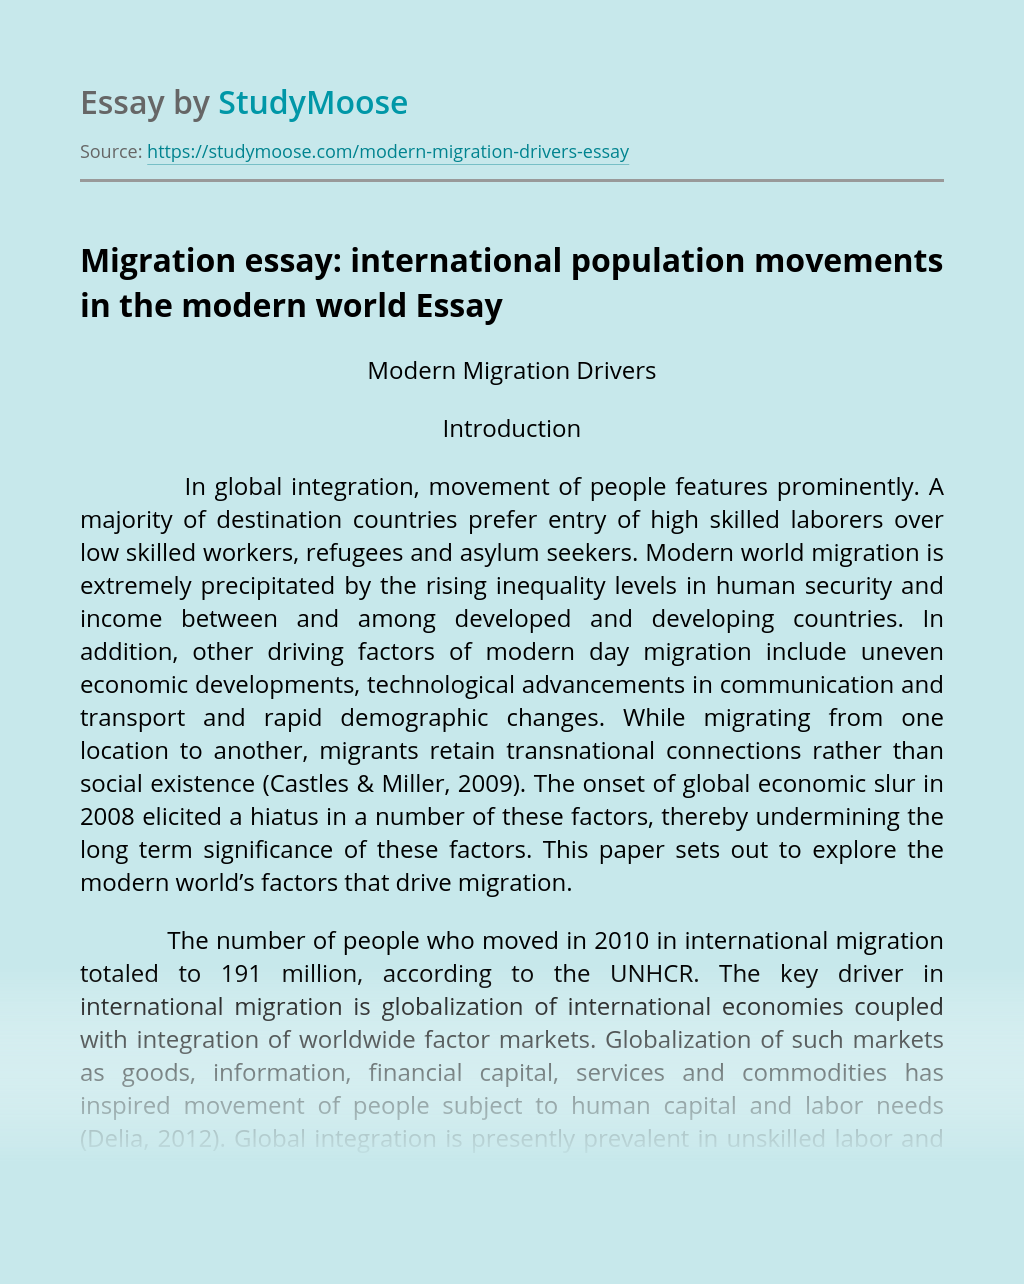 Migration essay: international population movements in the modern world